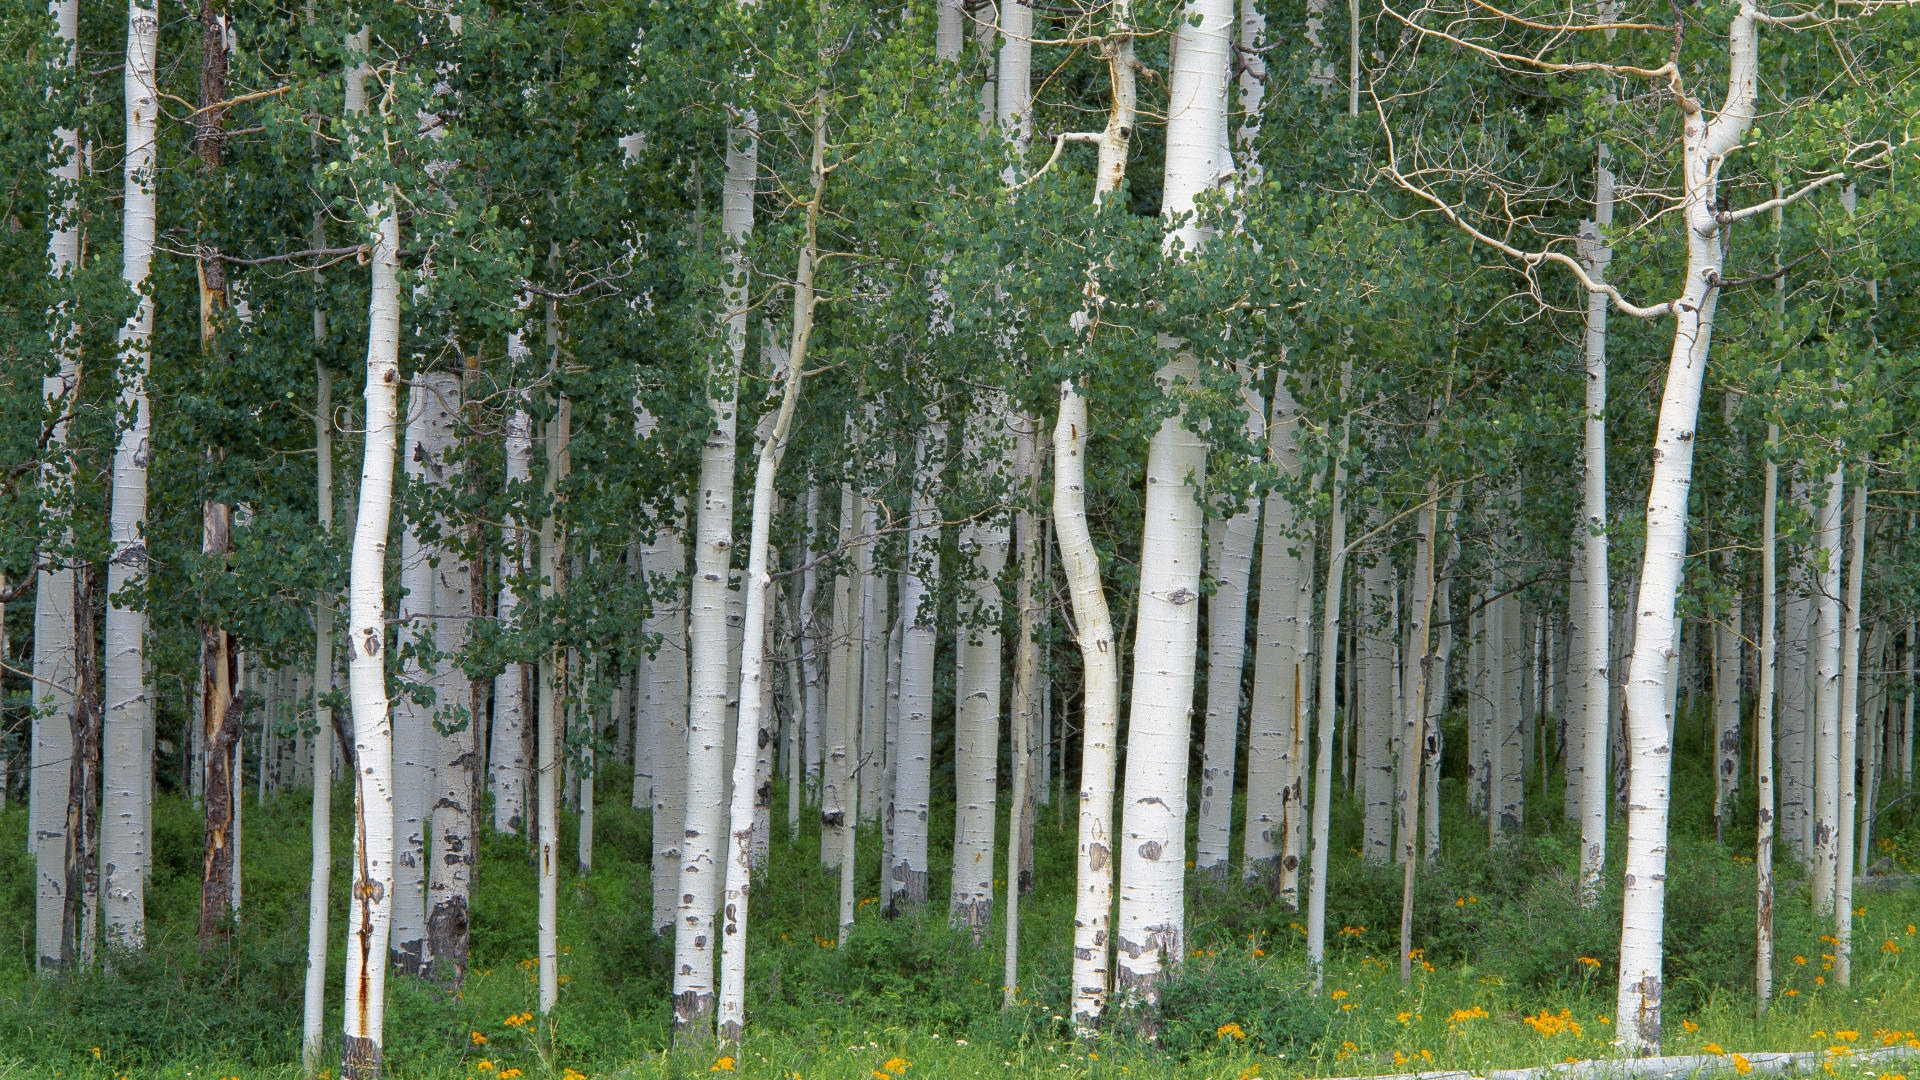 Birch trees, forest 1920x1080 wallpaper